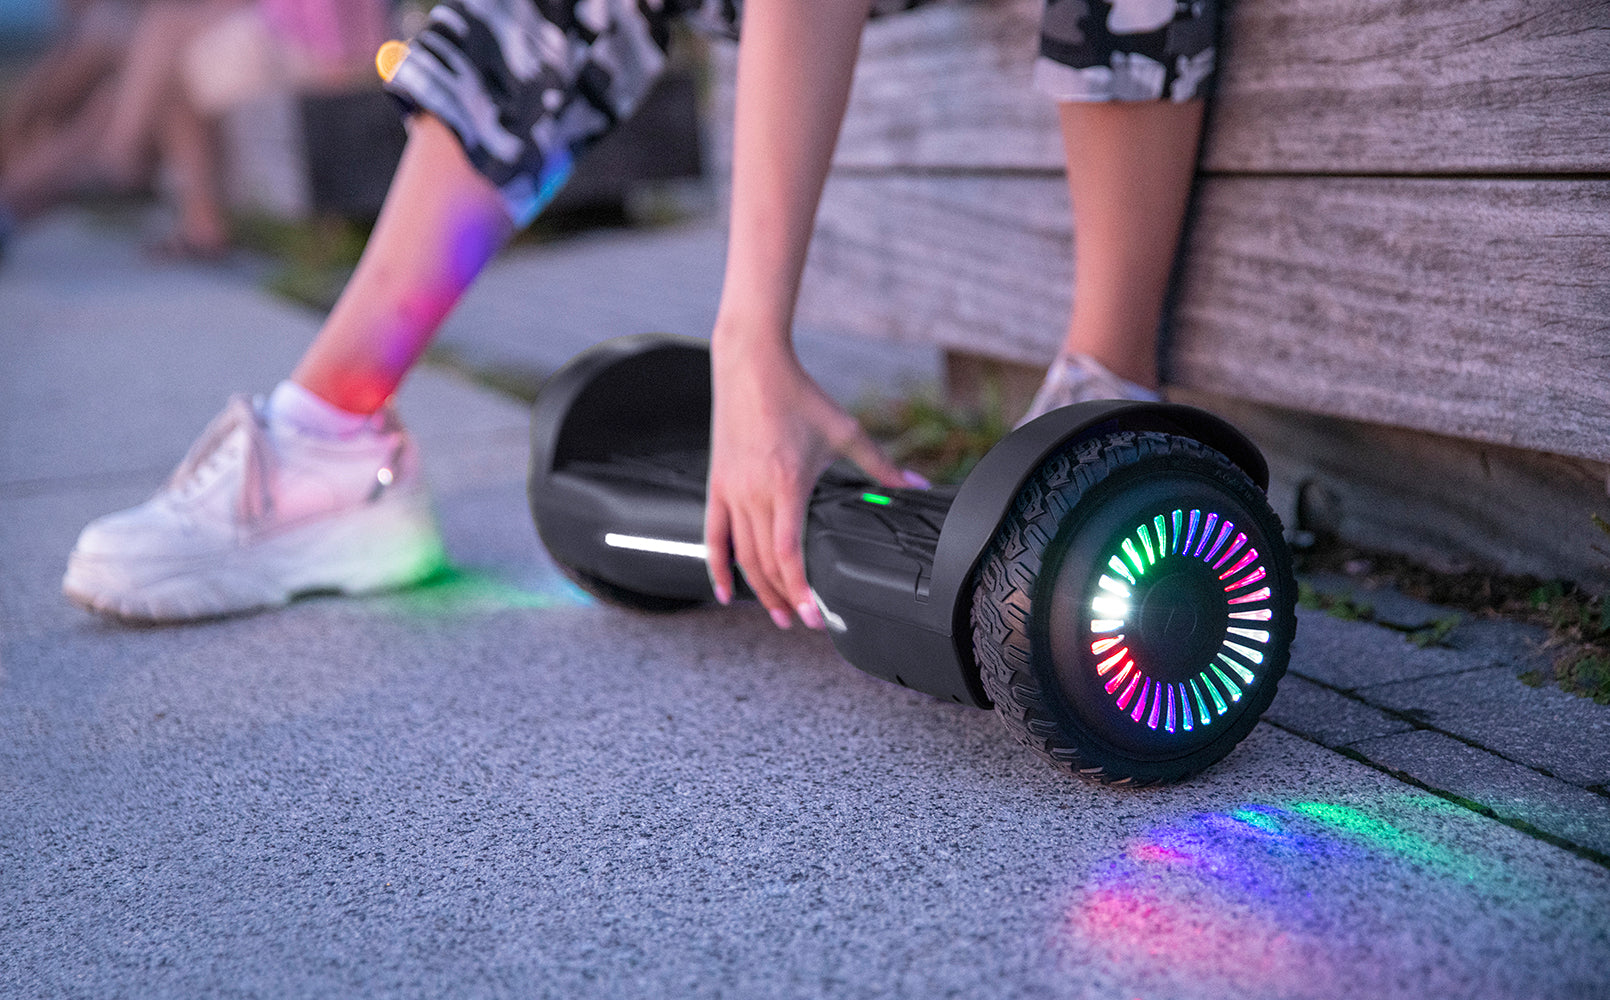 LED light up wheels